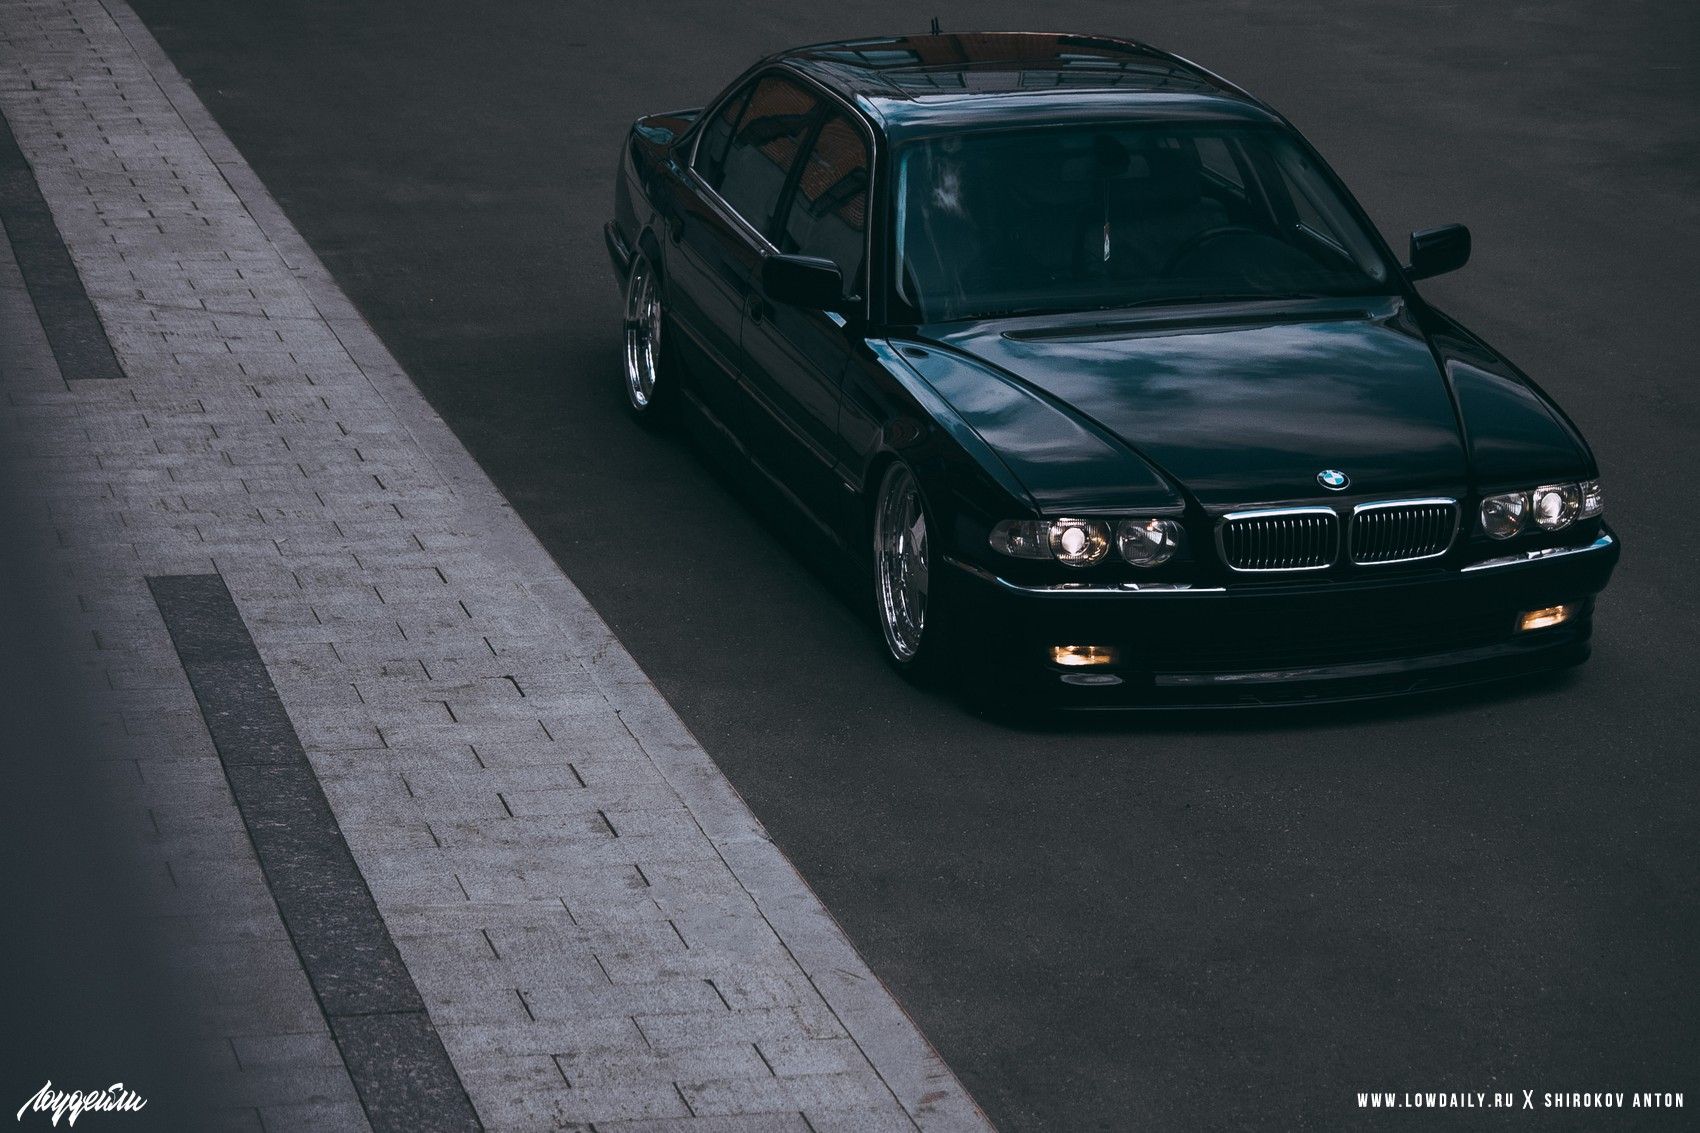 BMW E38 Lowdaily _MG_7041